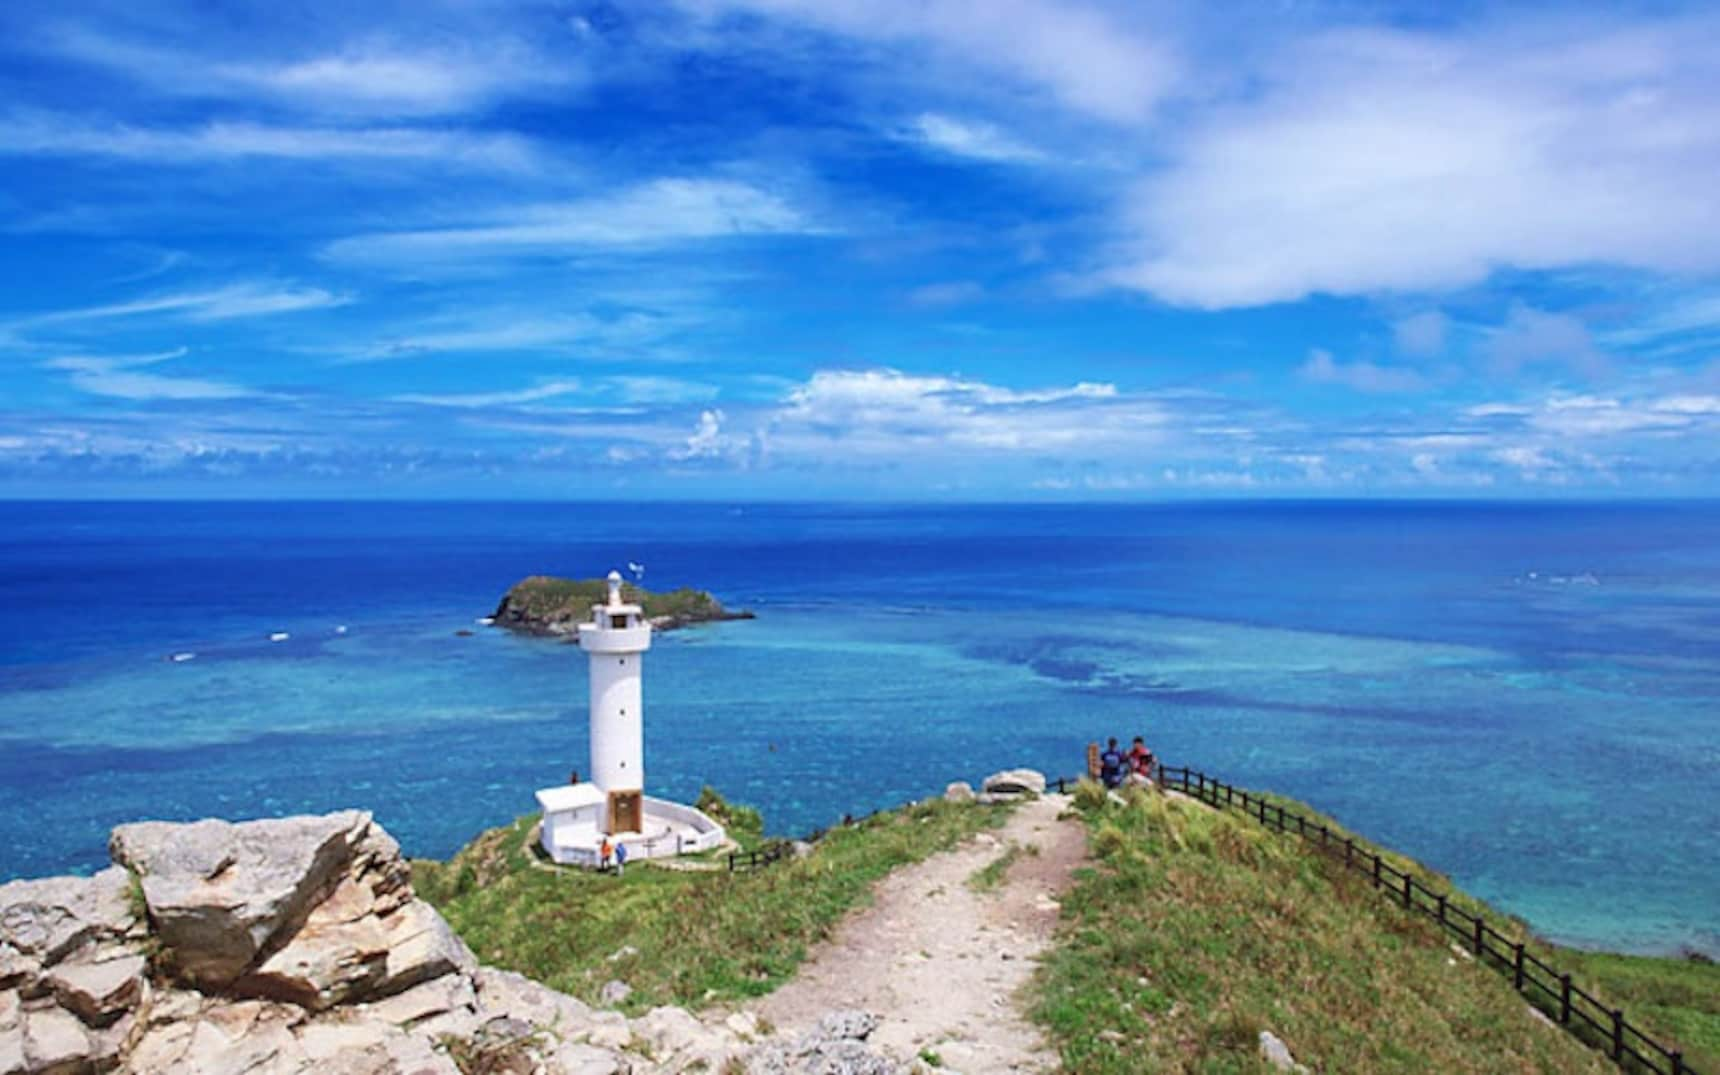 The Michelin Guide's Top 6 Beaches in Okinawa